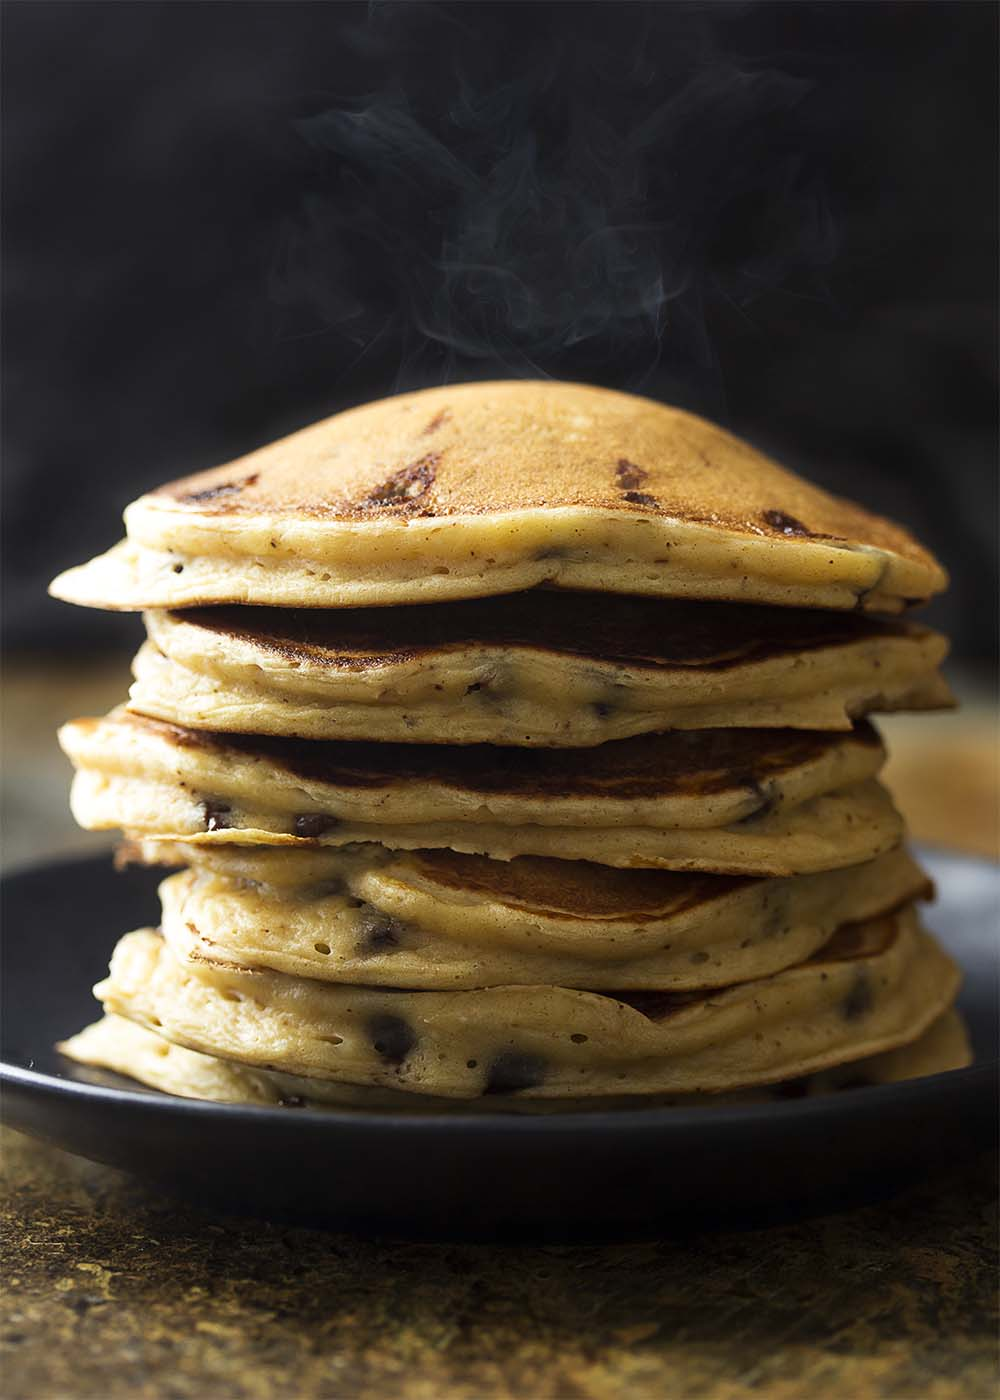 A hot stack of chocolate chip ricotta pancakes on a plate showing steam coming up off them.